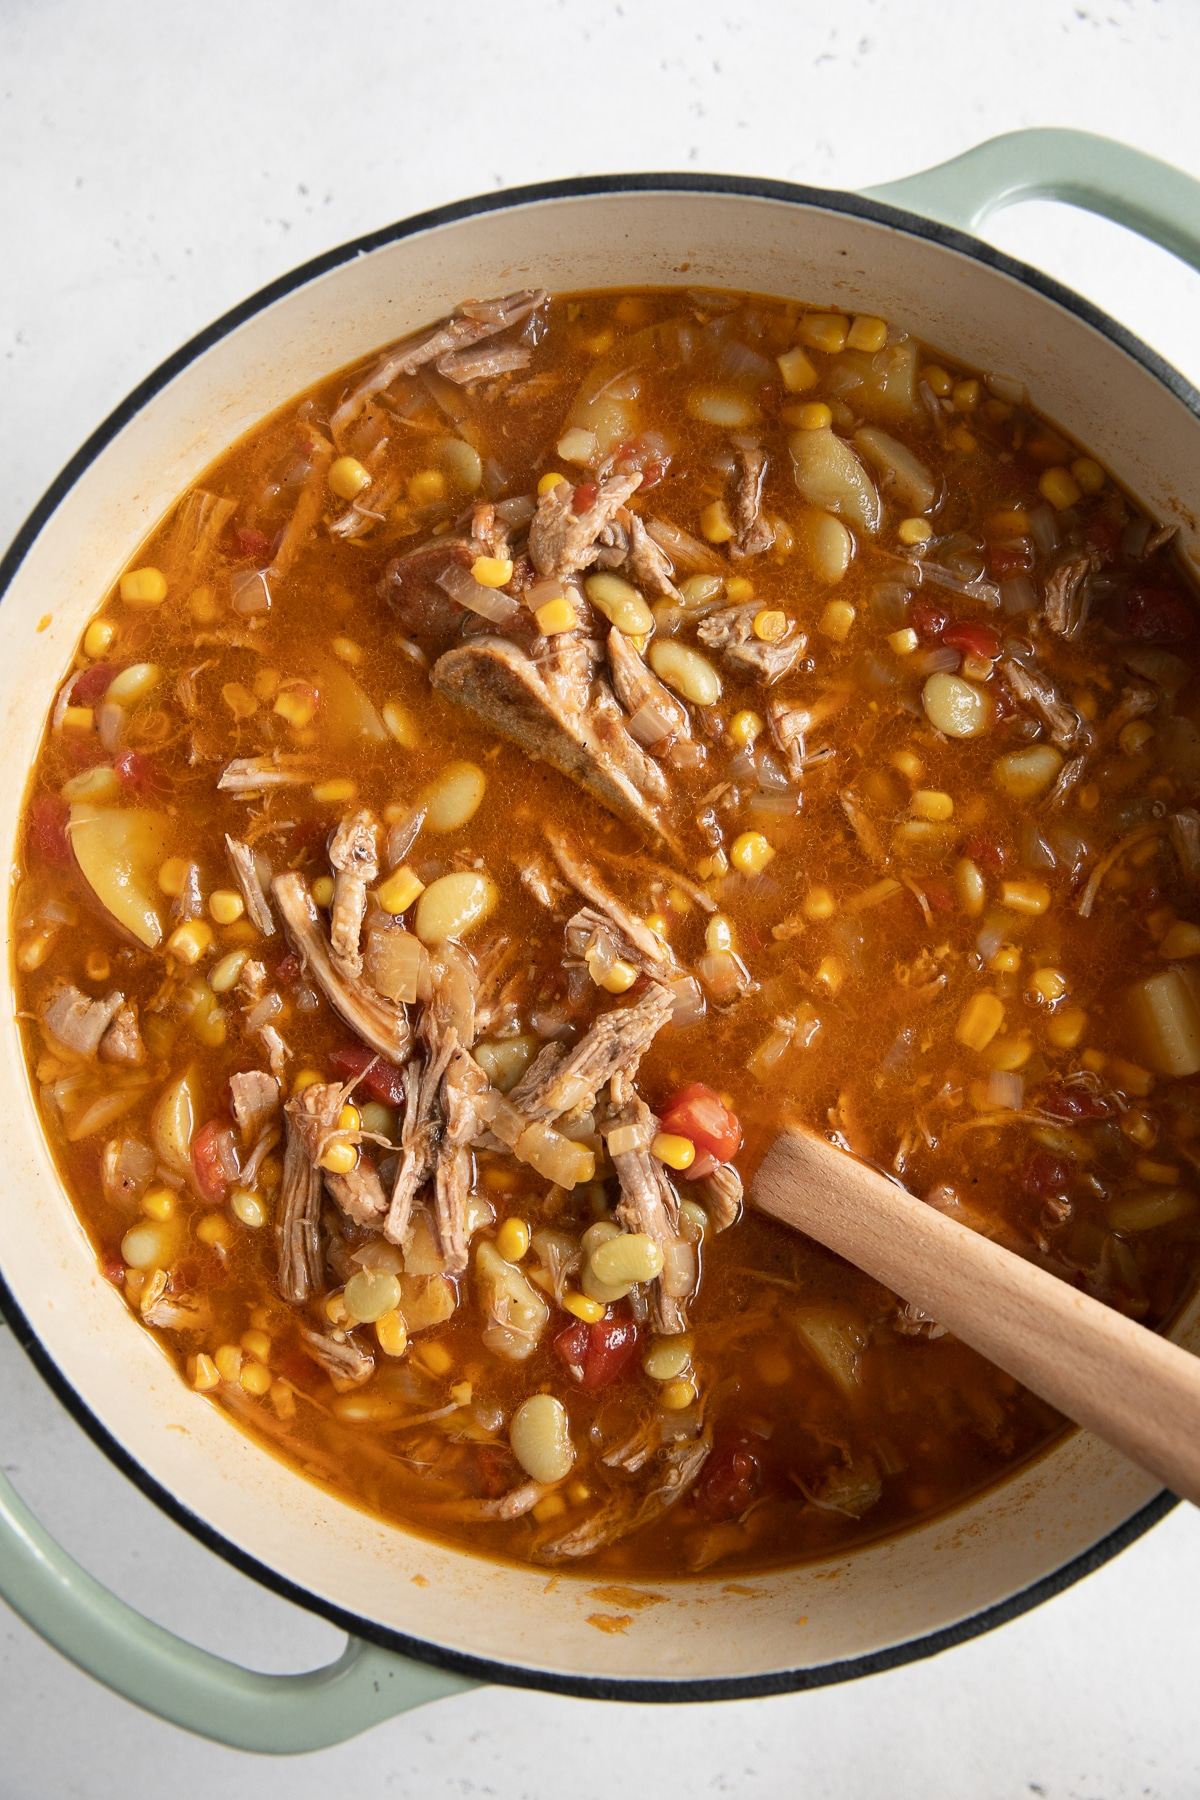 Large Dutch oven filled with a stew made with shredded pork, frozen lima beans, corn, tomatoes, potatoes, onions, and bbq sauce.